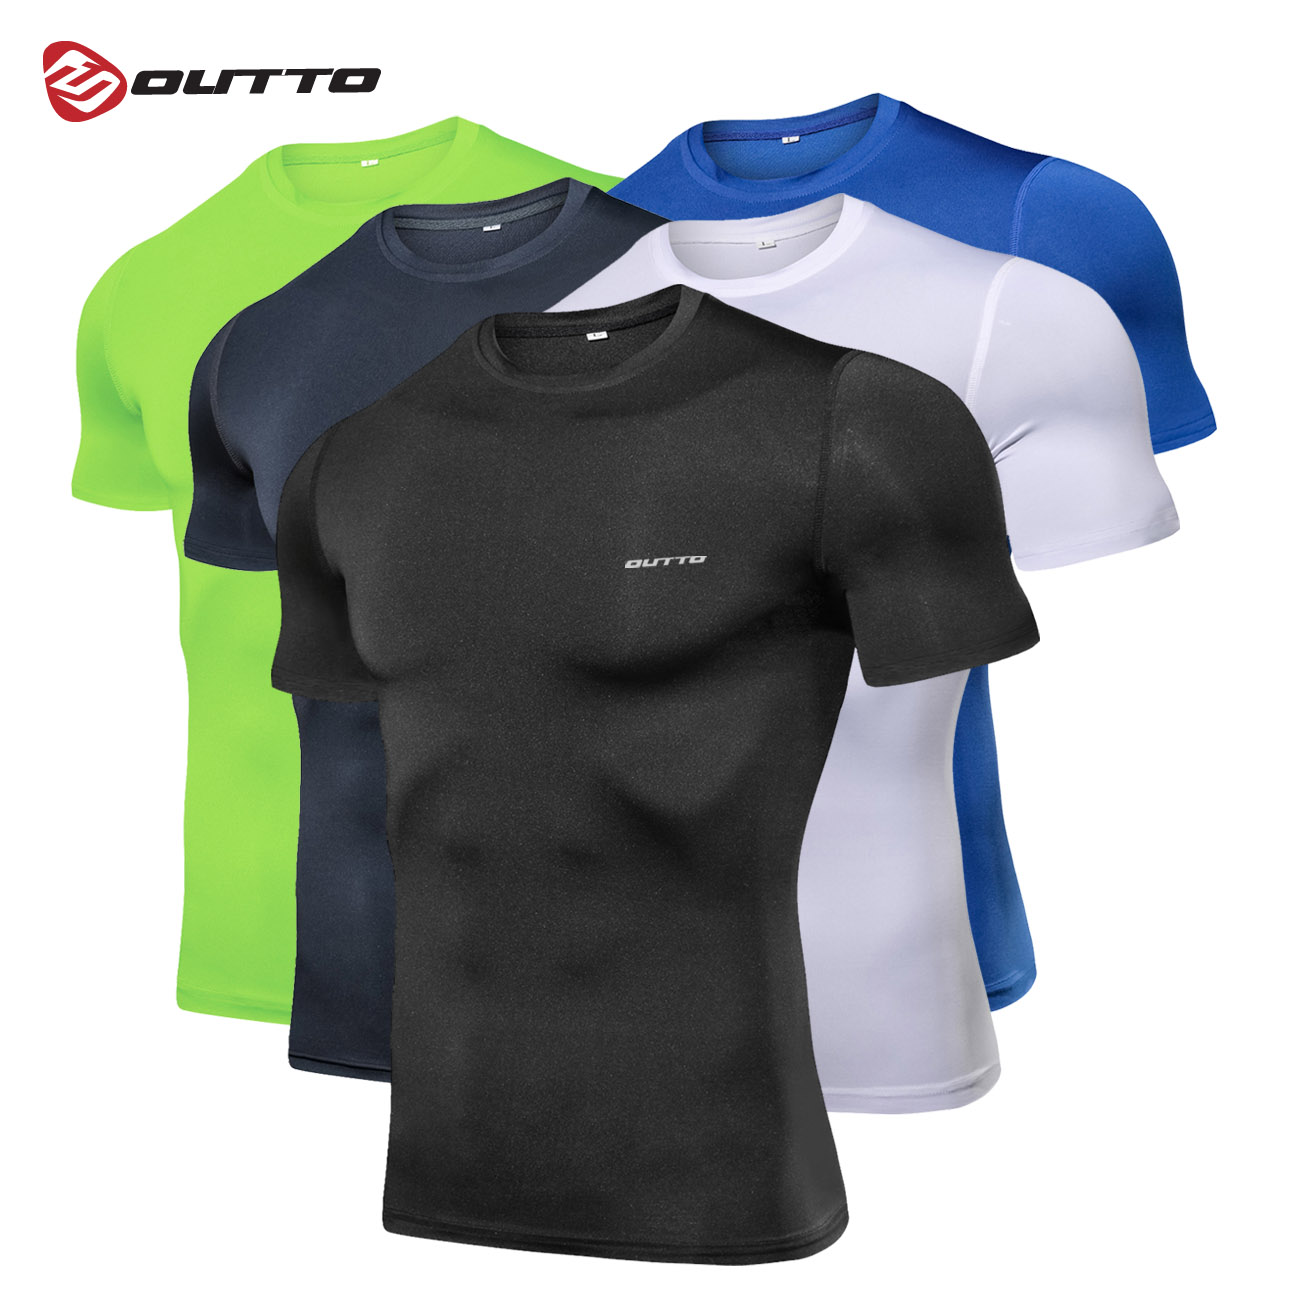 Men/'s Cool Dry Athletic Compression T-Shirts Short Sleeve Baselayer Workout Top